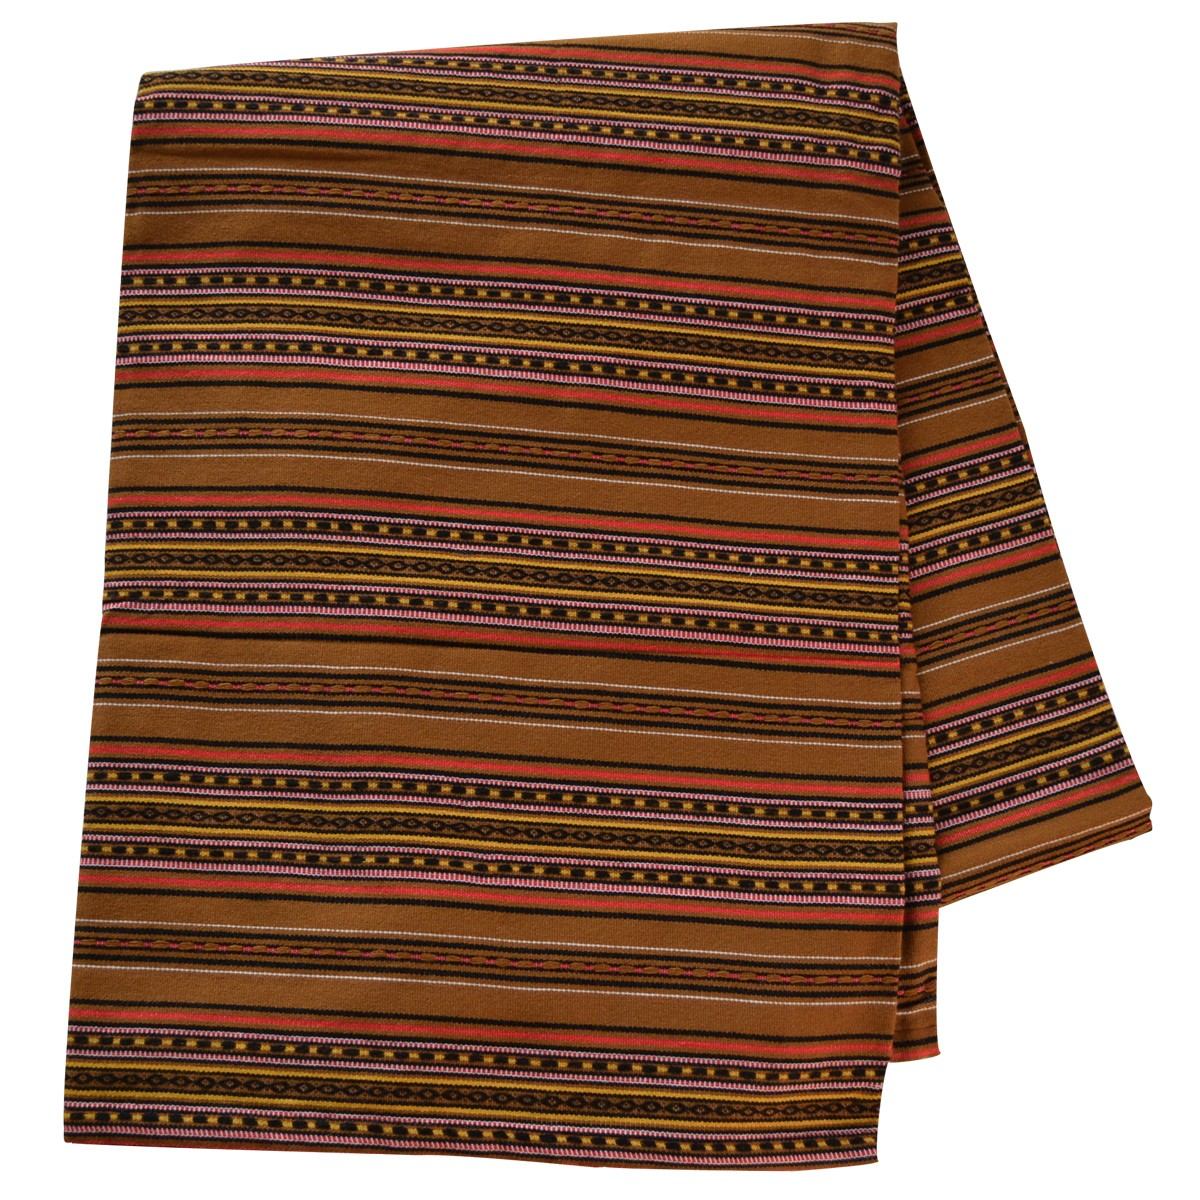 Kythnos Jacquard Blanket with Stripes